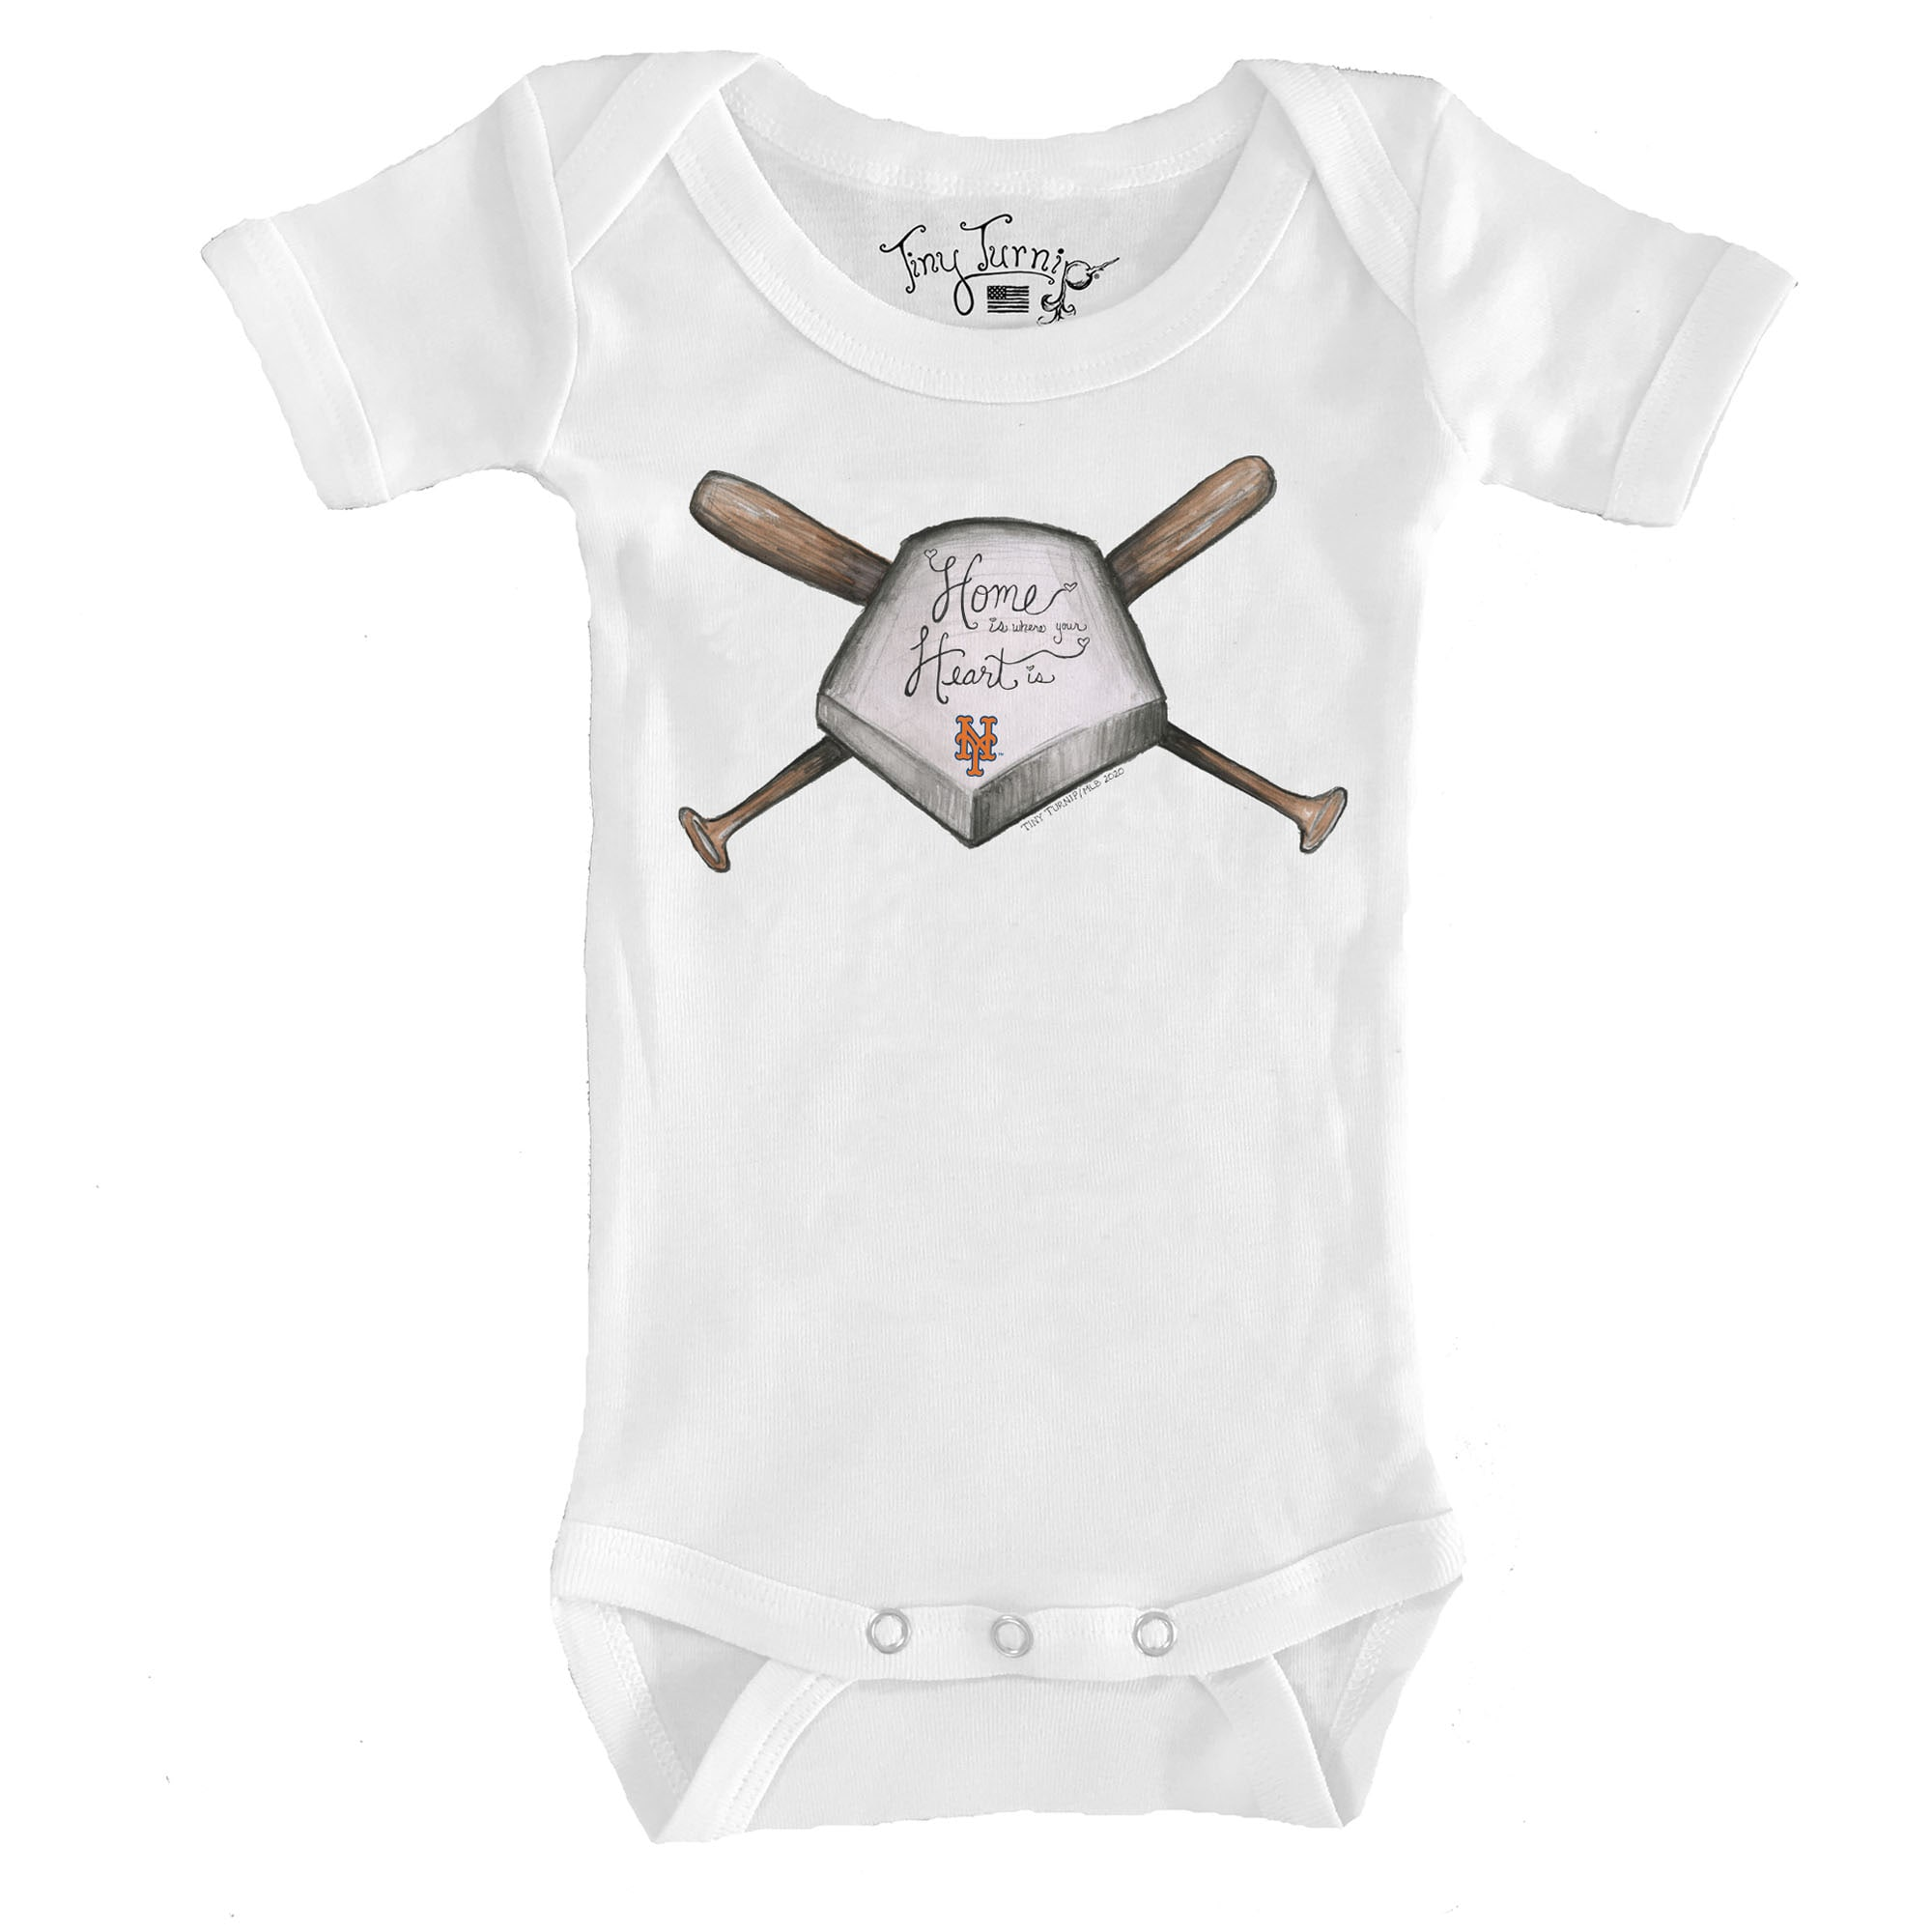 New York Mets Tiny Turnip Infant Home Is Where Your Heart Is Bodysuit - White